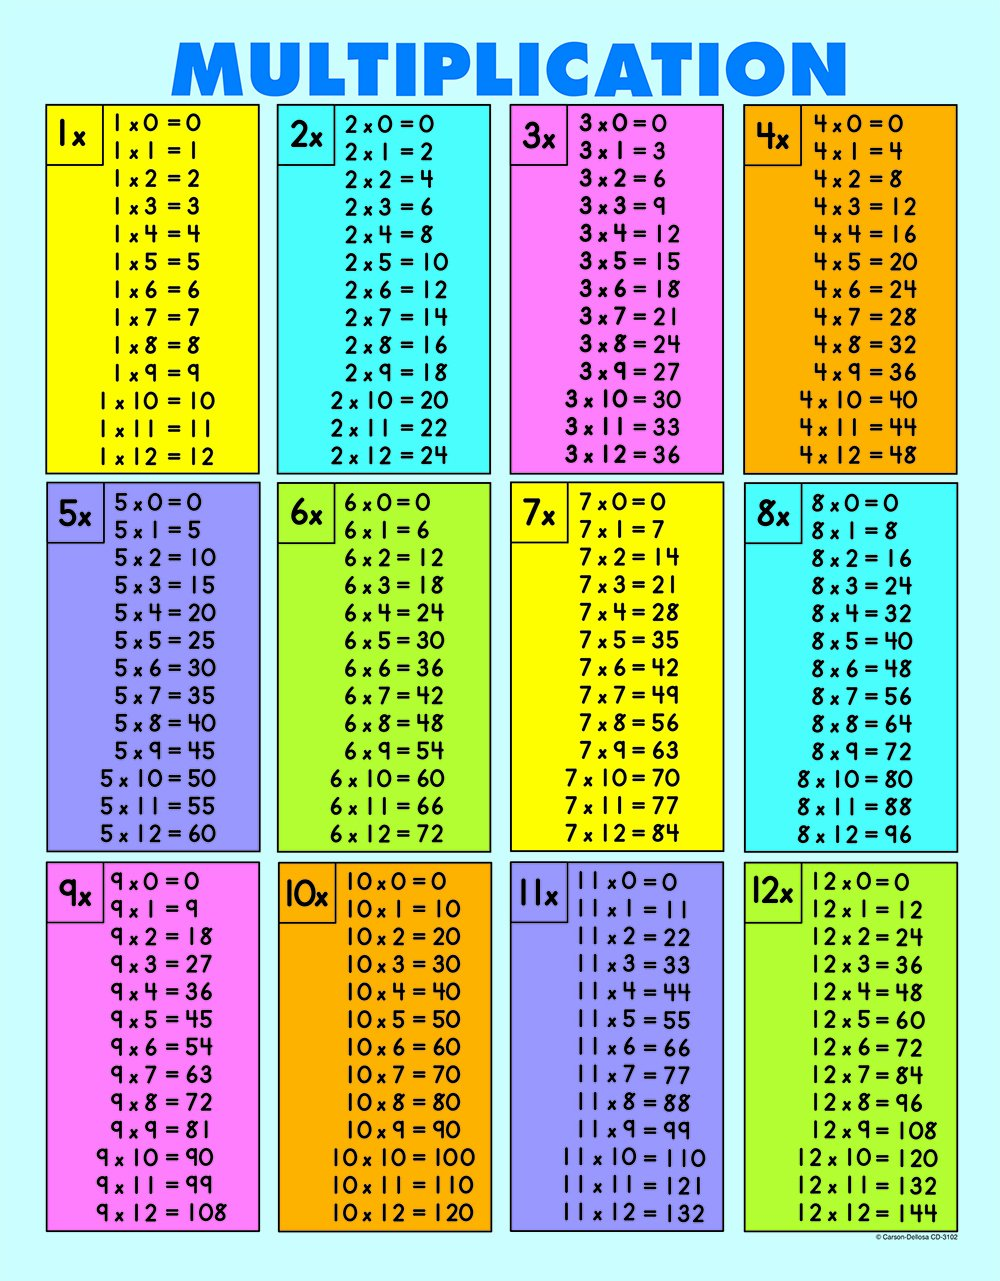 Multiplication facts through 12 popflyboys for Table multiplication 9